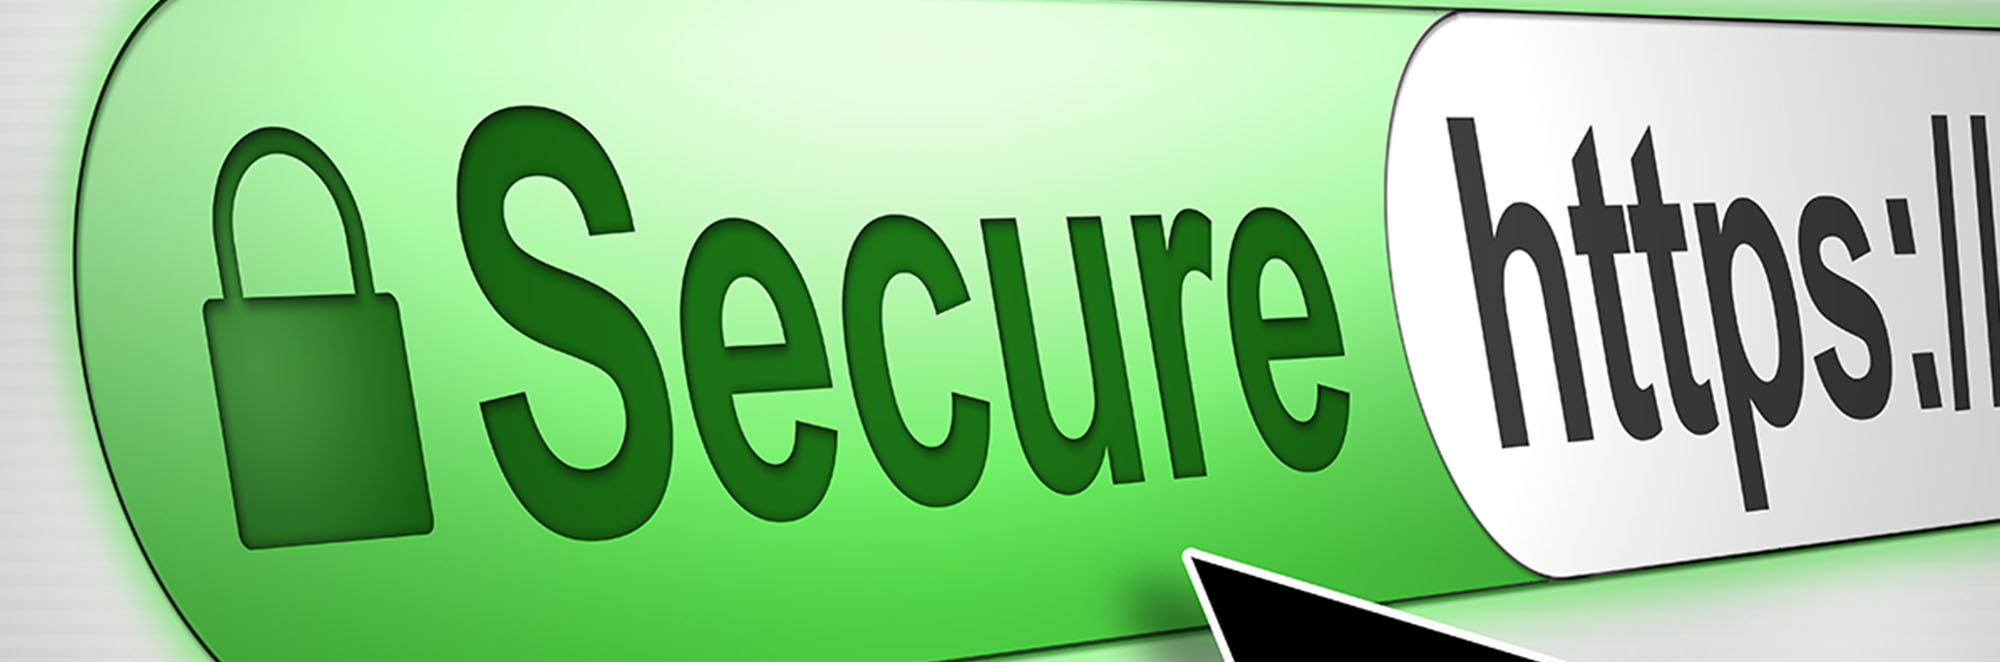 Why Do You Need An Ssl Certificate D Fi Productions Nj Web Design